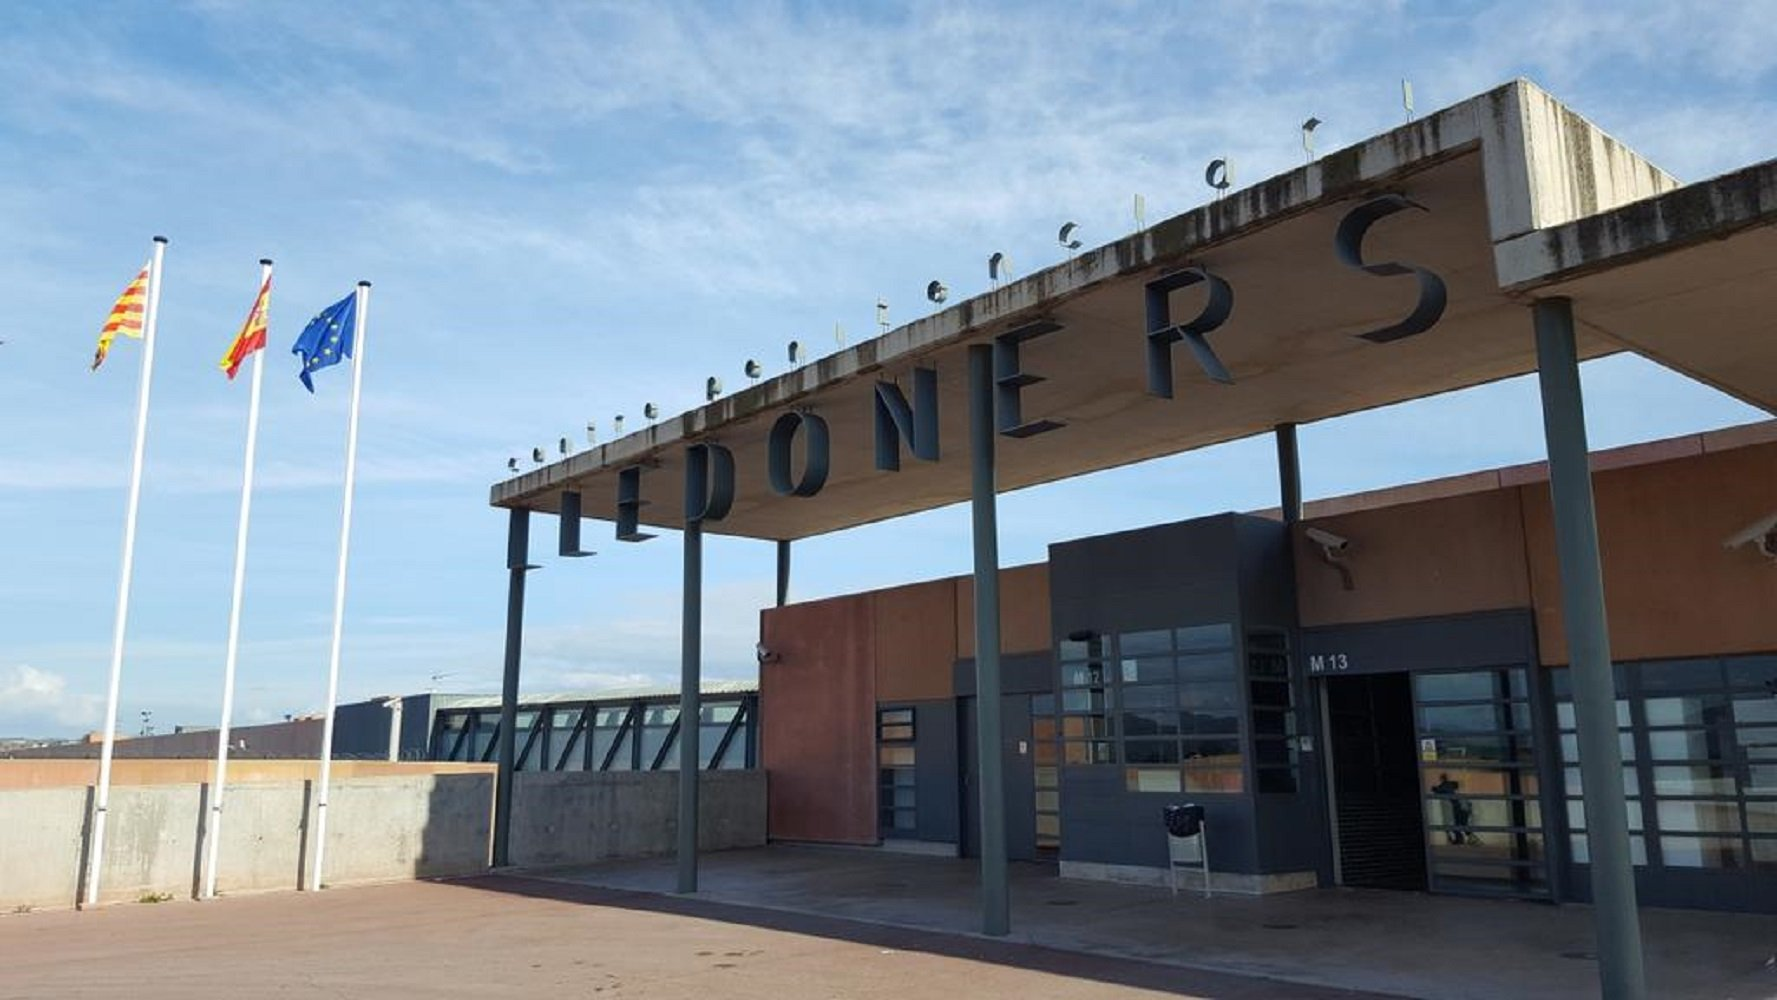 In Lledoners prison with Josep Rull